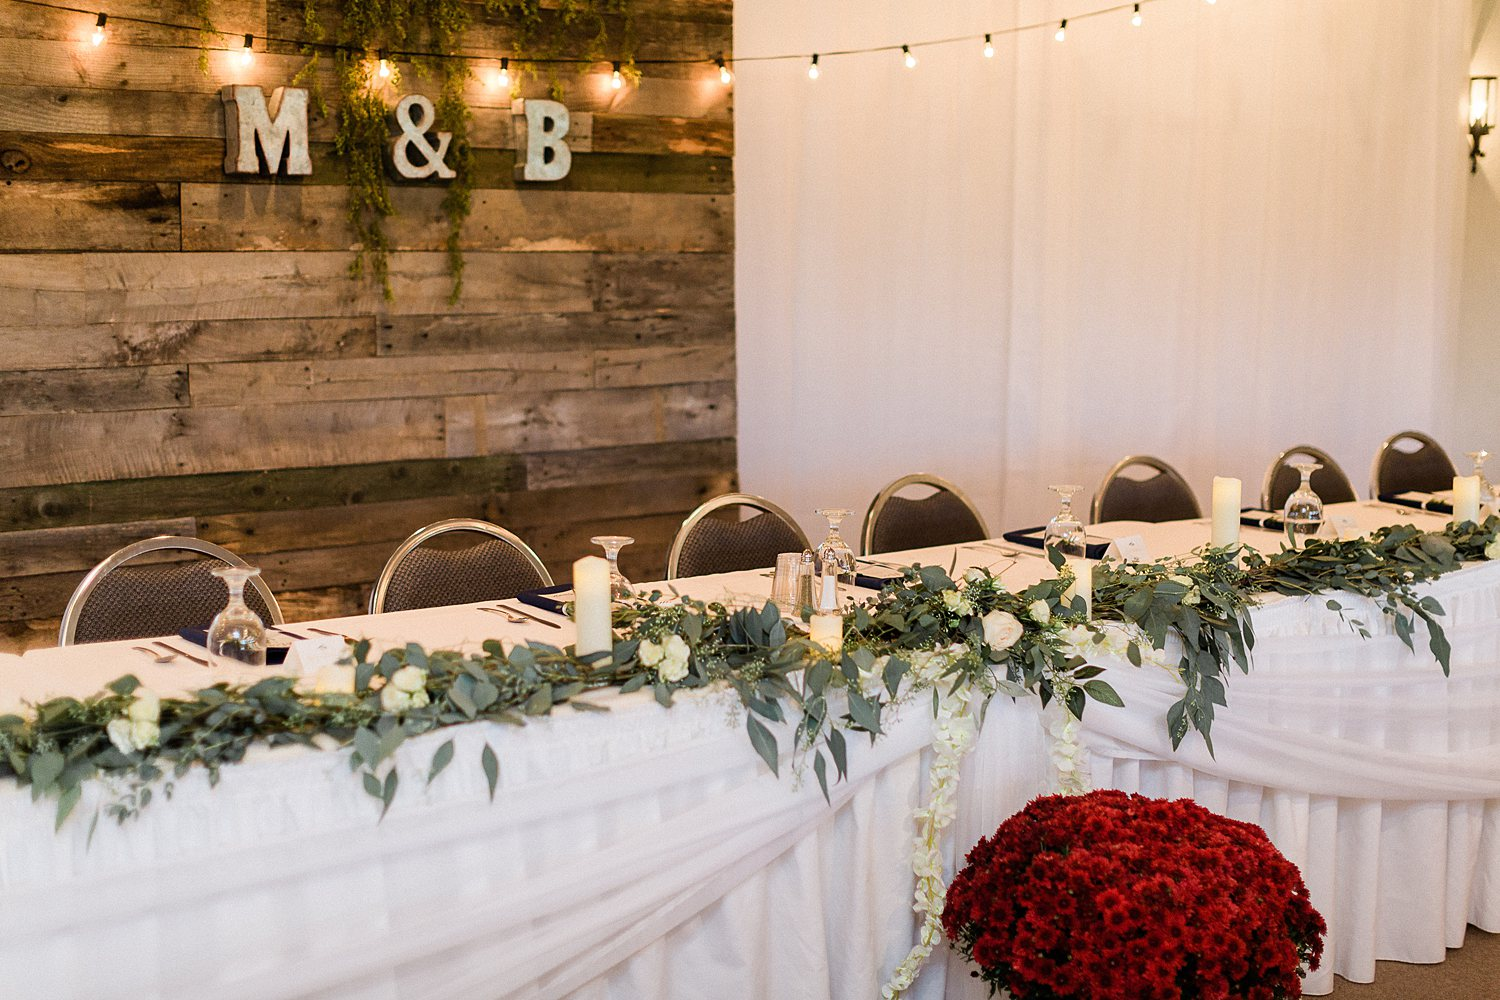 North_Central_Wisconsin_Event_Wedding_Venues_Fall_Weddings_The_Bailiwick_Venue_James-Stokes-Photography062.jpg